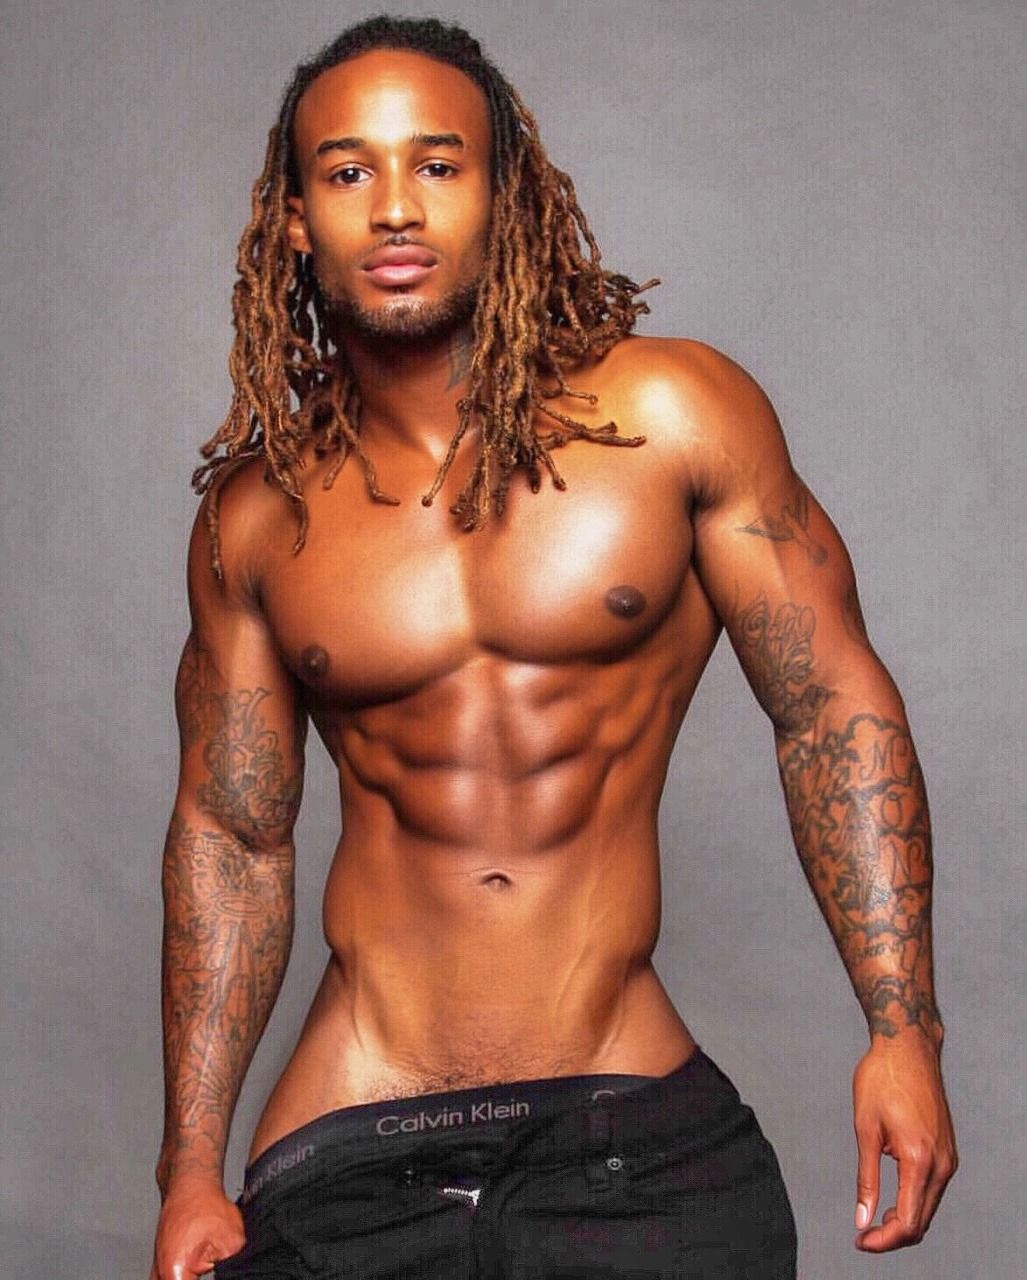 Model sexiest black male dreadlocks, fucking ballet pose